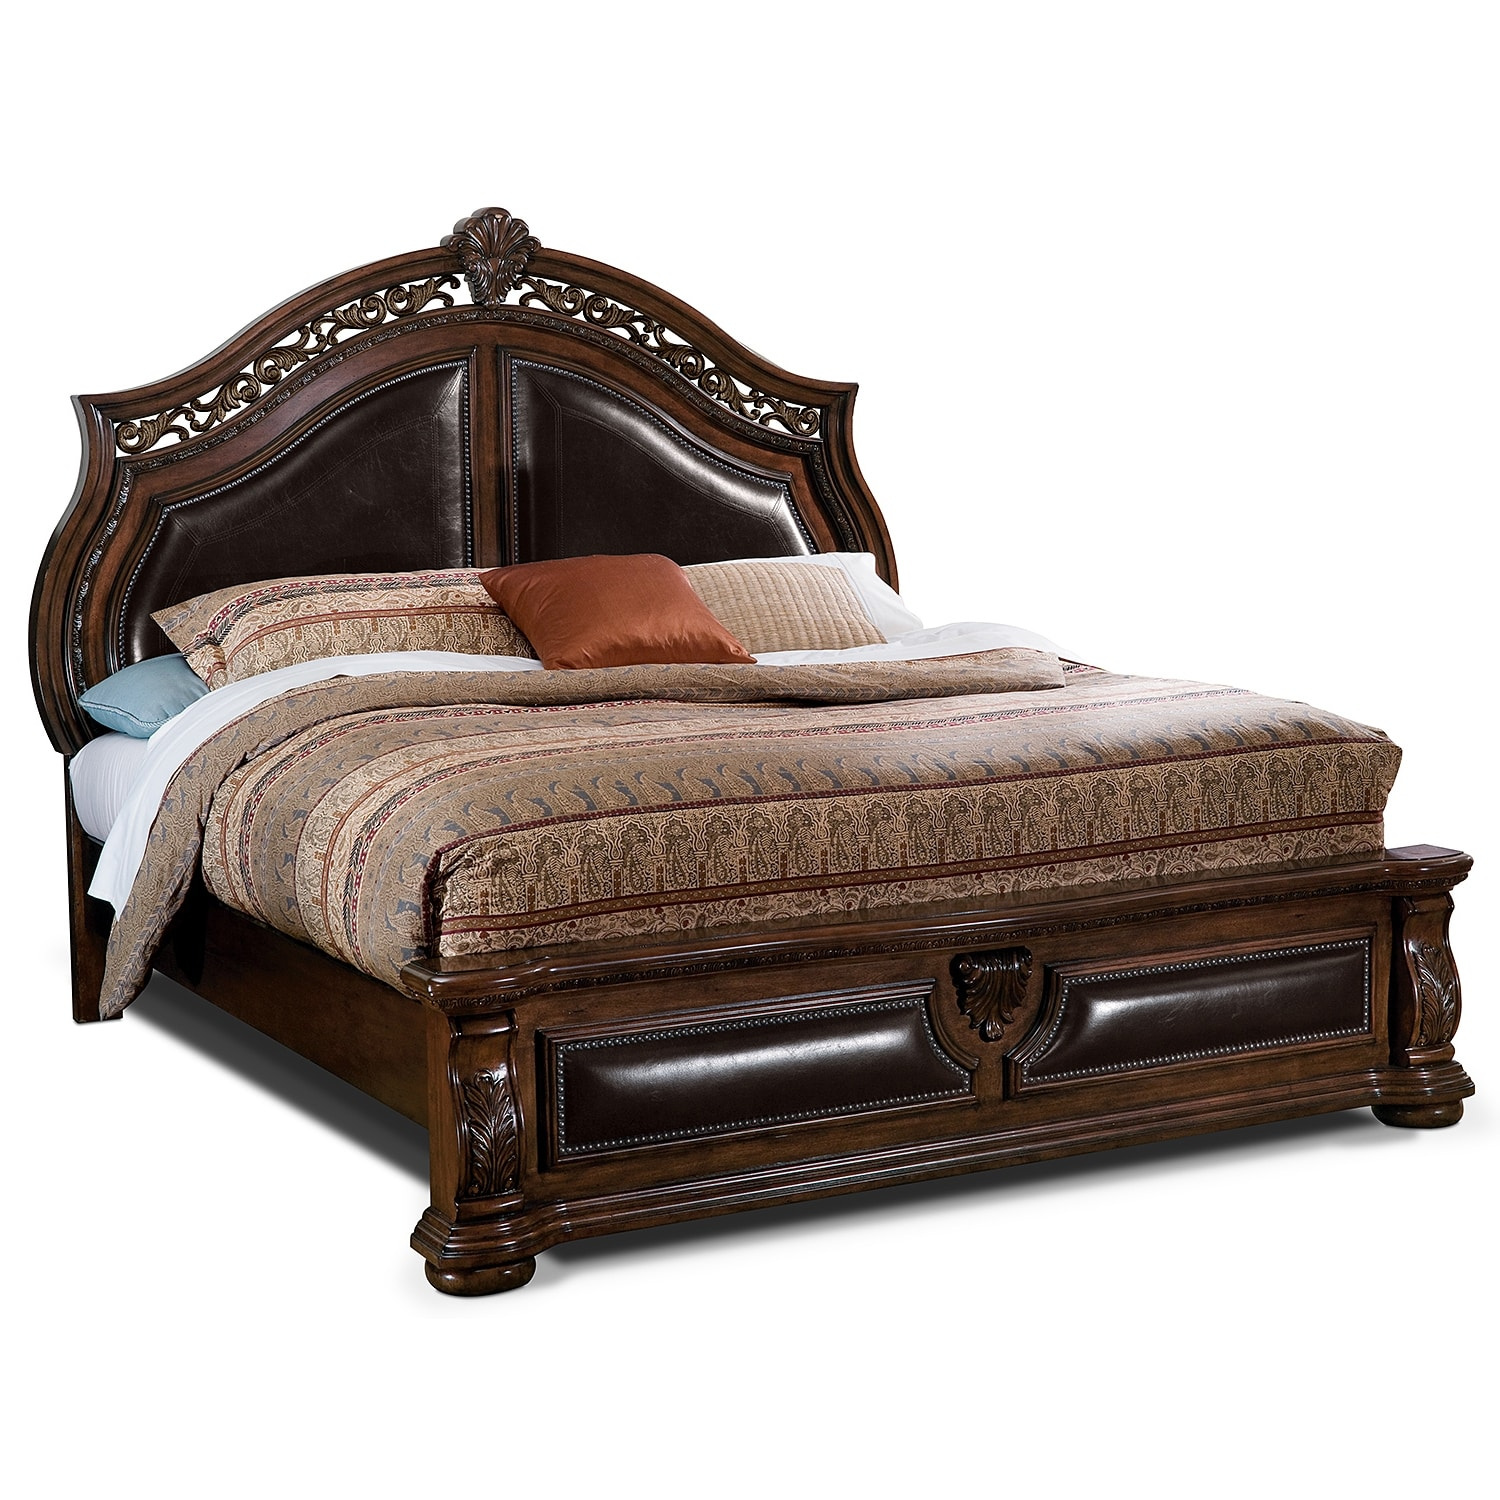 Morocco queen bed american signature furniture for Bedroom furniture beds